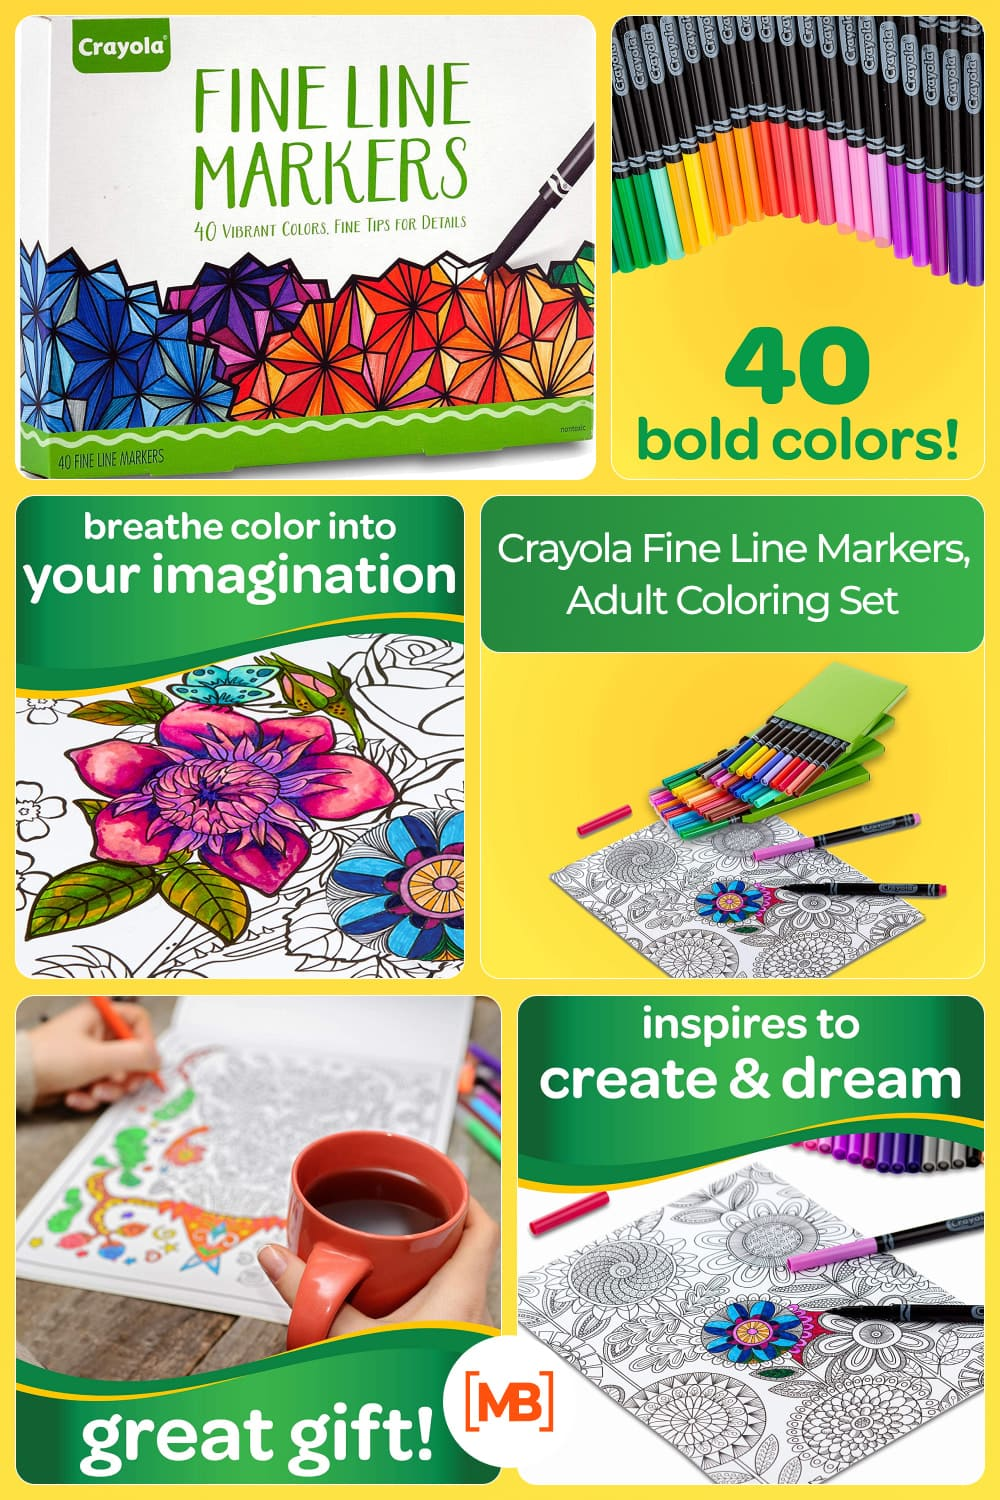 One 40-ct crayola fine line markers adult coloring set.